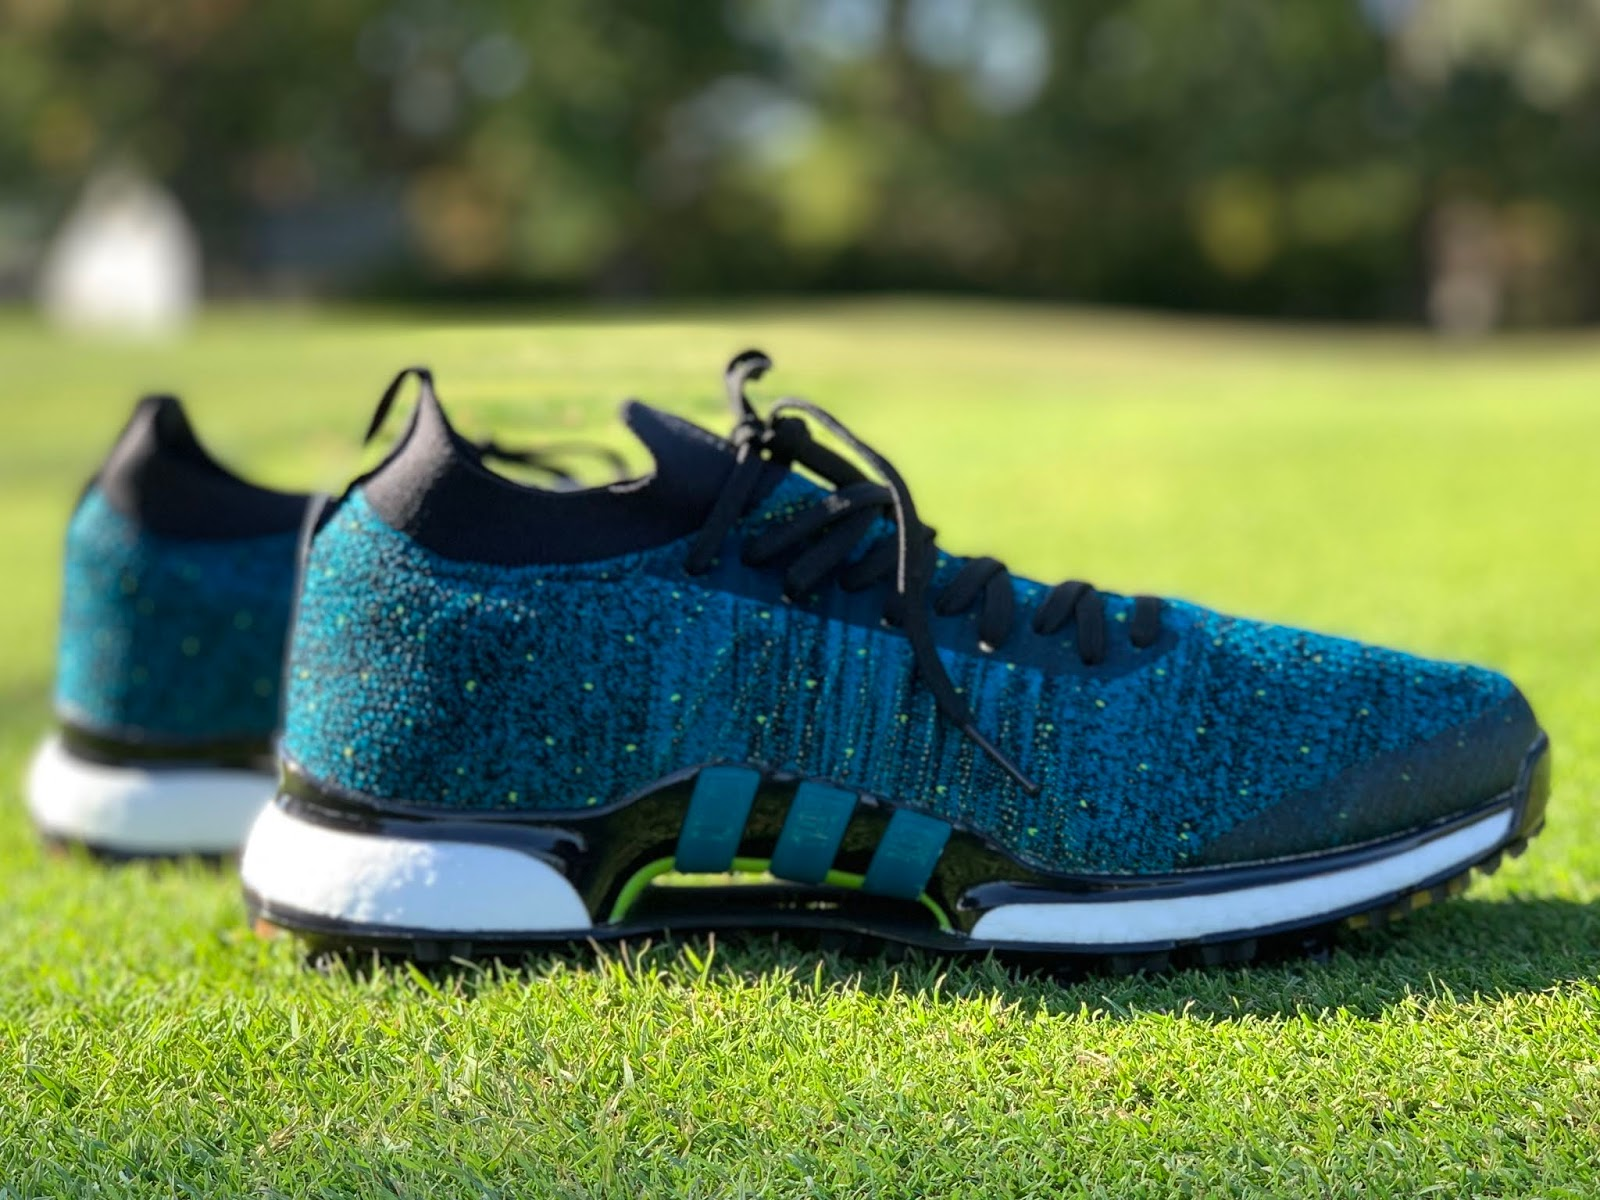 riqueza Opcional algo  The #1 Writer in Golf: Adidas Golf Tour360 XT Primeknit Shoes Review: King  of the Course in Lightweight Comfort and Performance